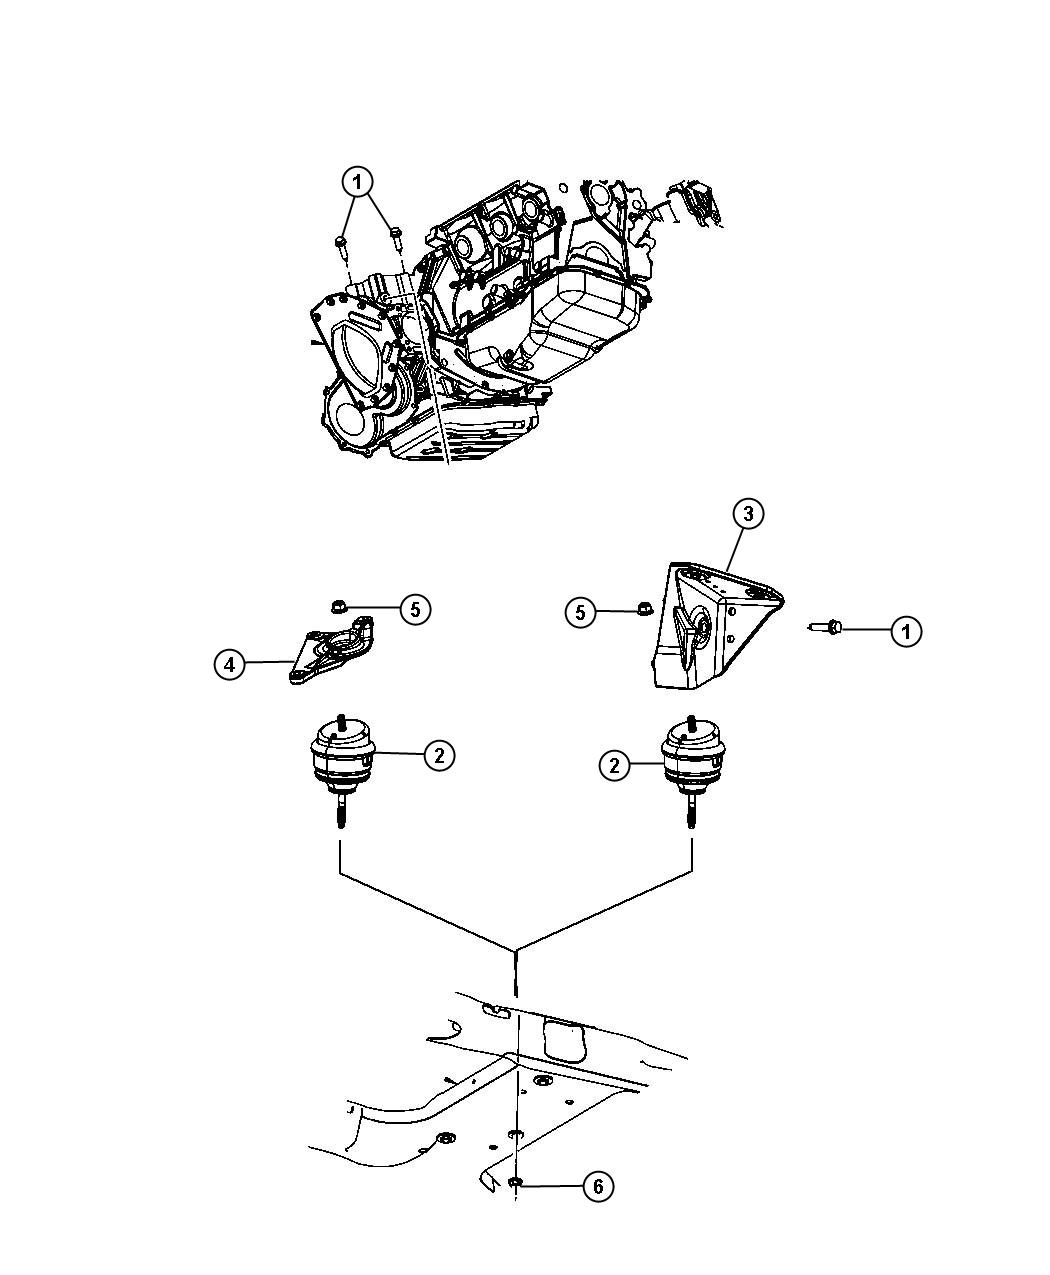 2007 chrysler pacifica engine diagram epiphone es 335 pro wiring isolator mount rear load